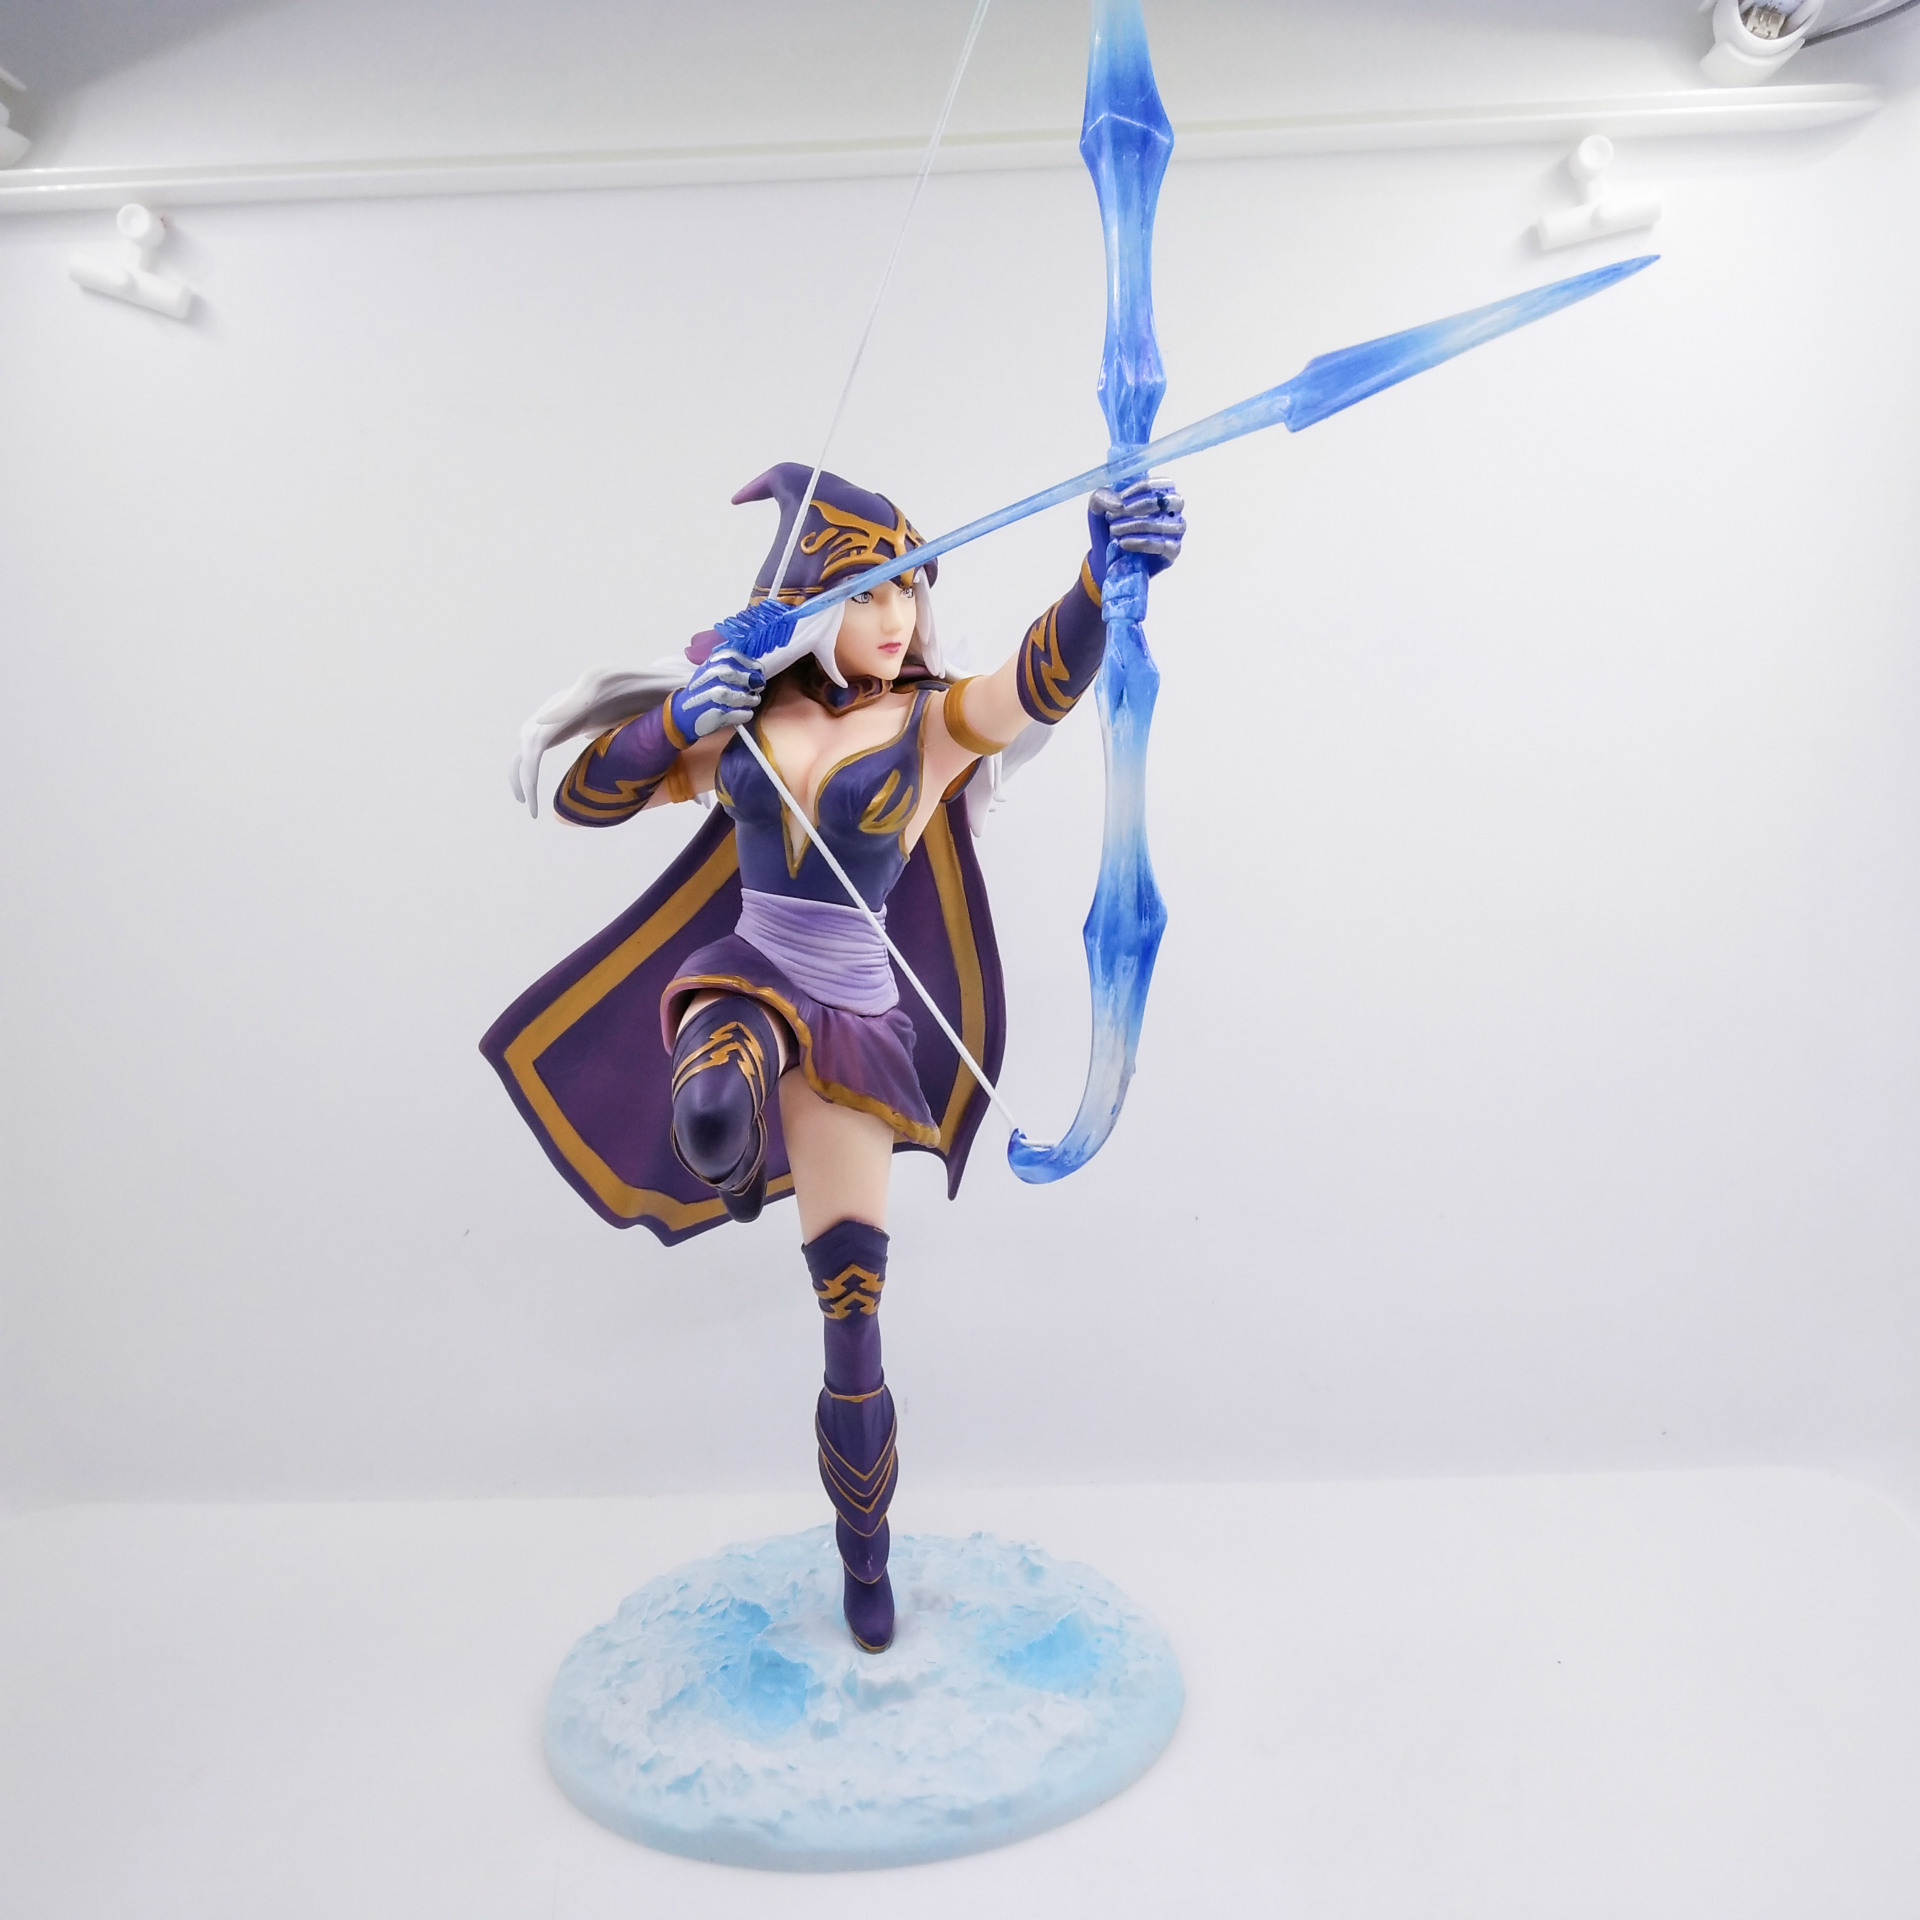 WVW 23CM Sports Game Dolls LOL Ashe VN Yasuo Zed Play Arts Model PVC Toy Action Figure Decoration For Collection Gift